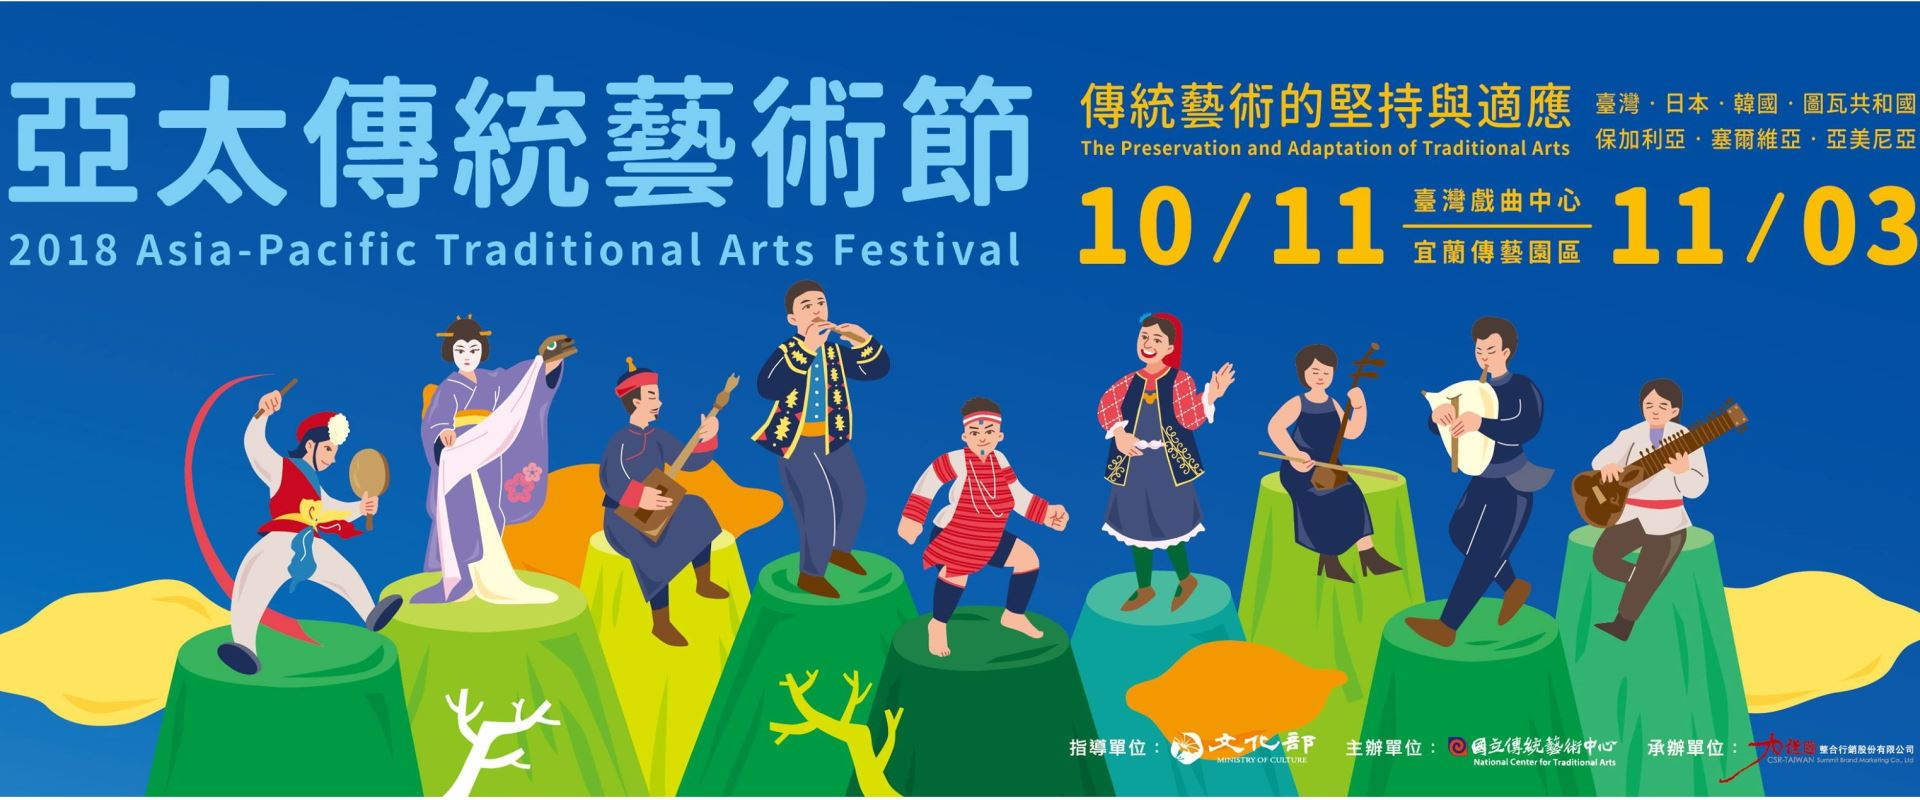 2018 Asia-Pacific Traditional Arts Festival[另開新視窗]